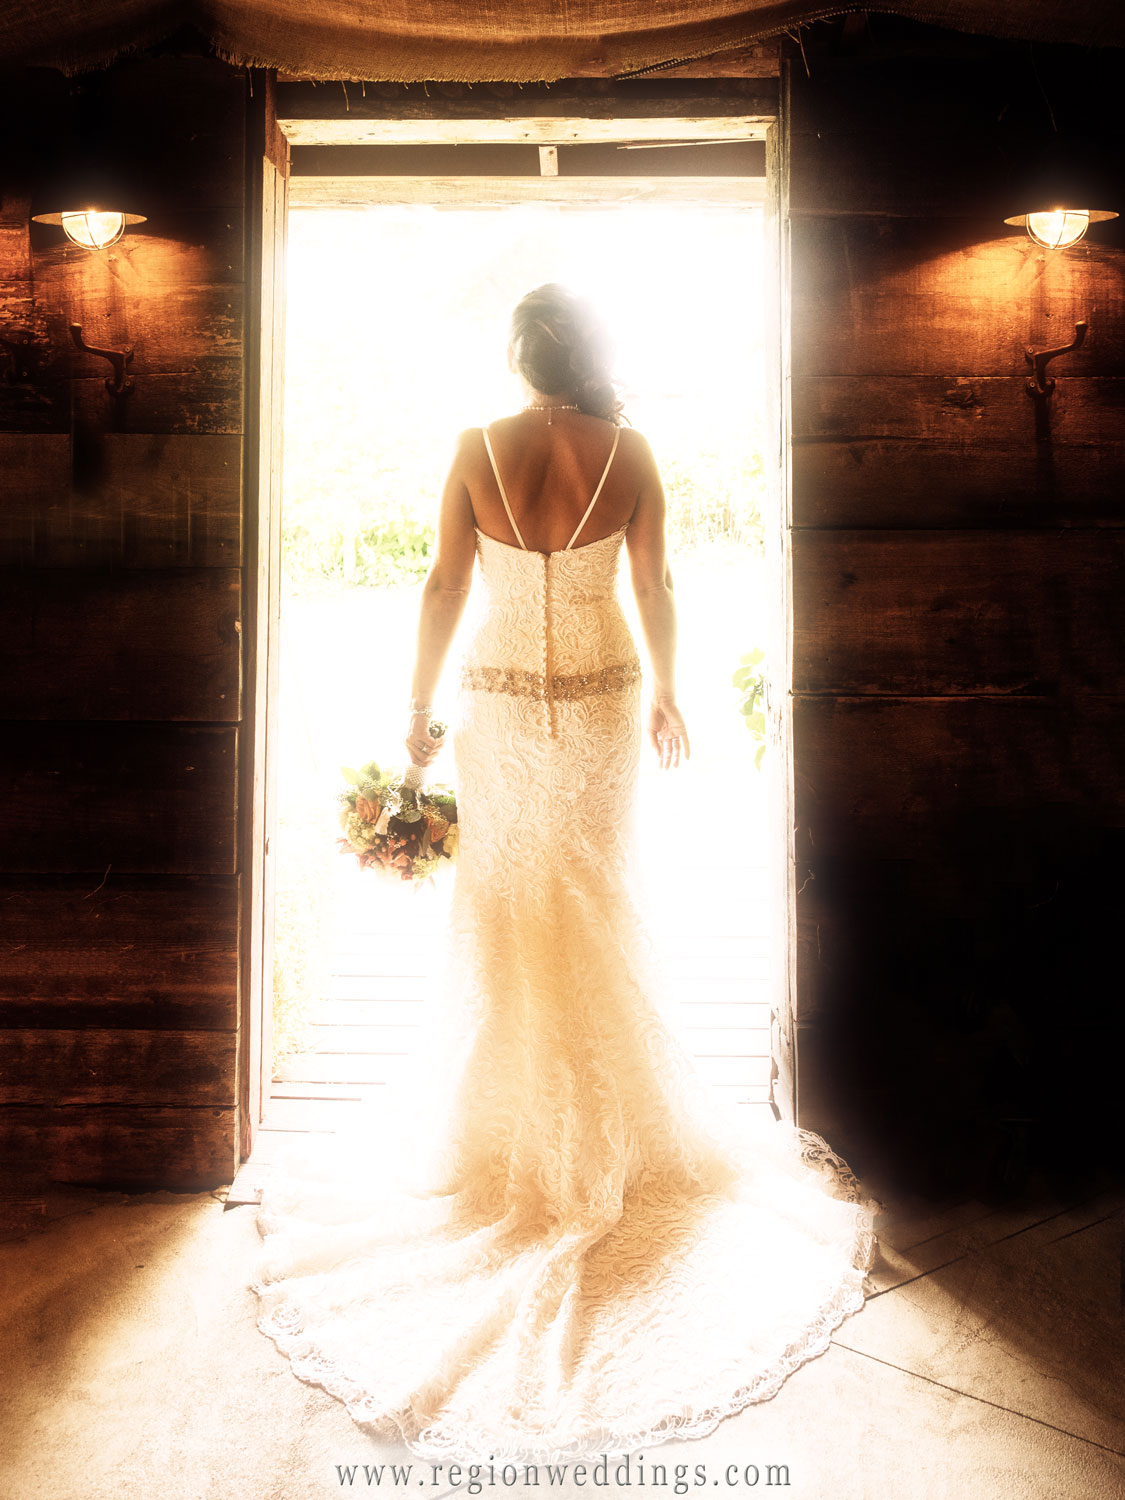 The bride glows in sunlight at the entrance of The Red Barn Experience in LaPort, Indiana.